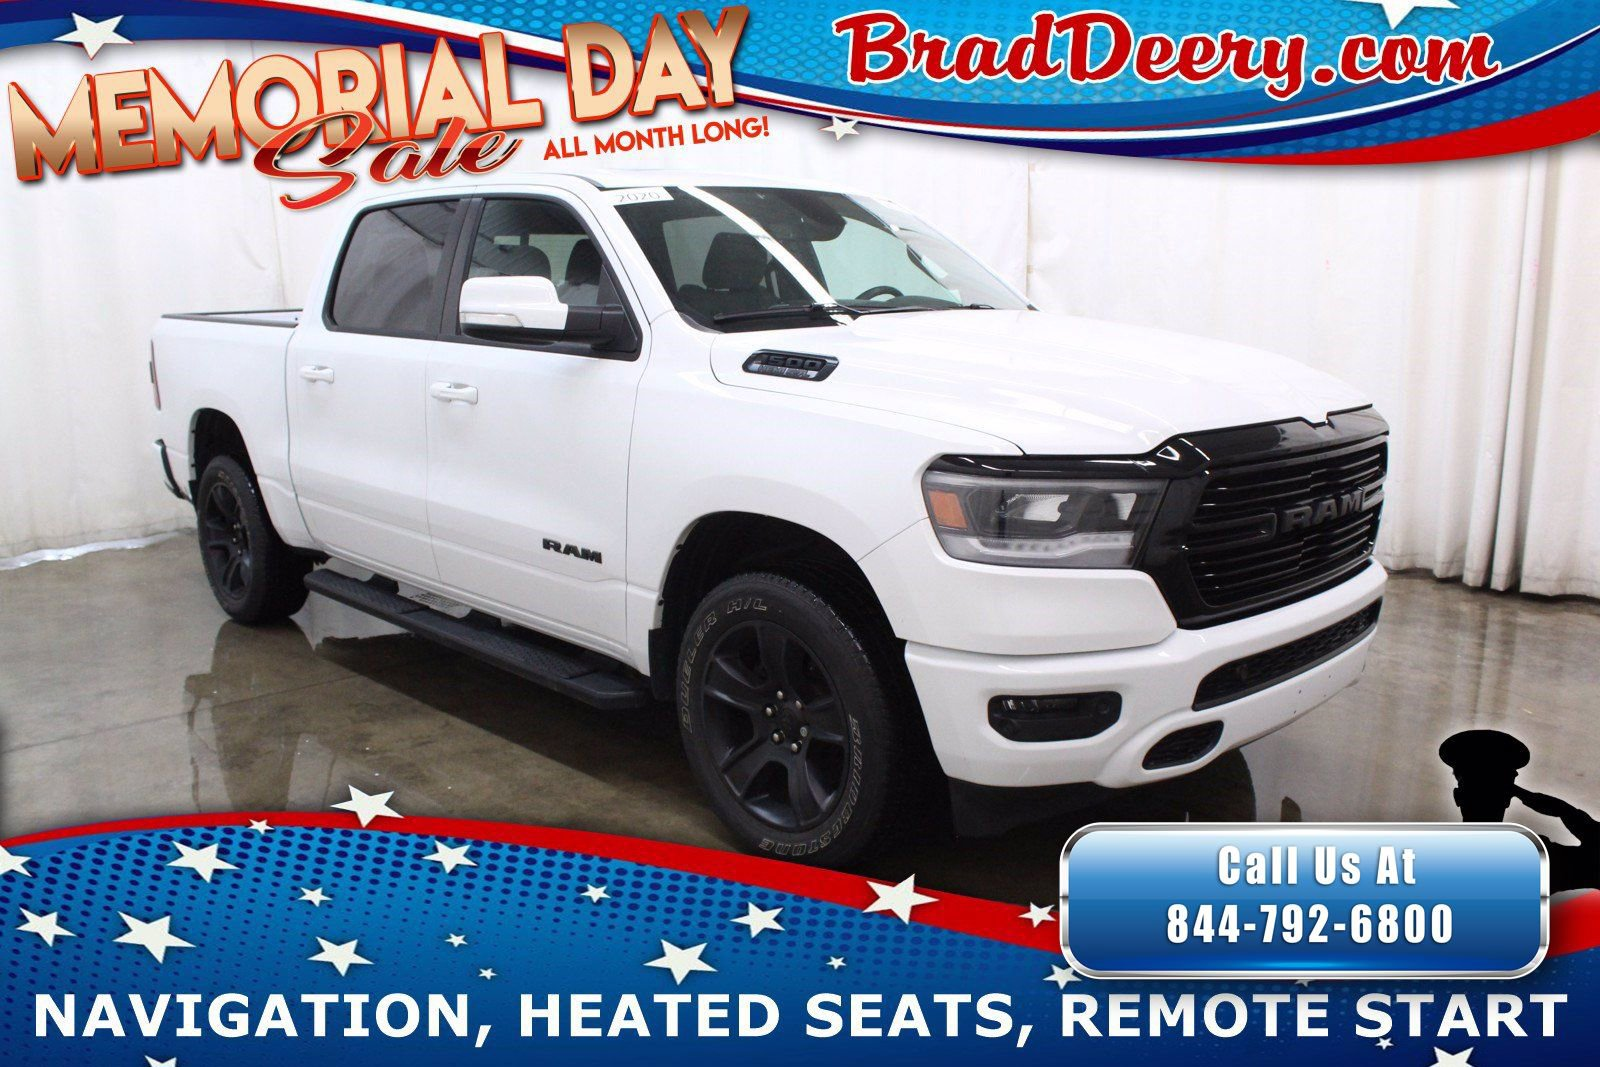 2020 Ram 1500 Big Horn Crew Cab 4x4 **NIGHT EDITION** w/ 12 T-Screen, Navigation, Sunroof, Htd Seats & R. Start